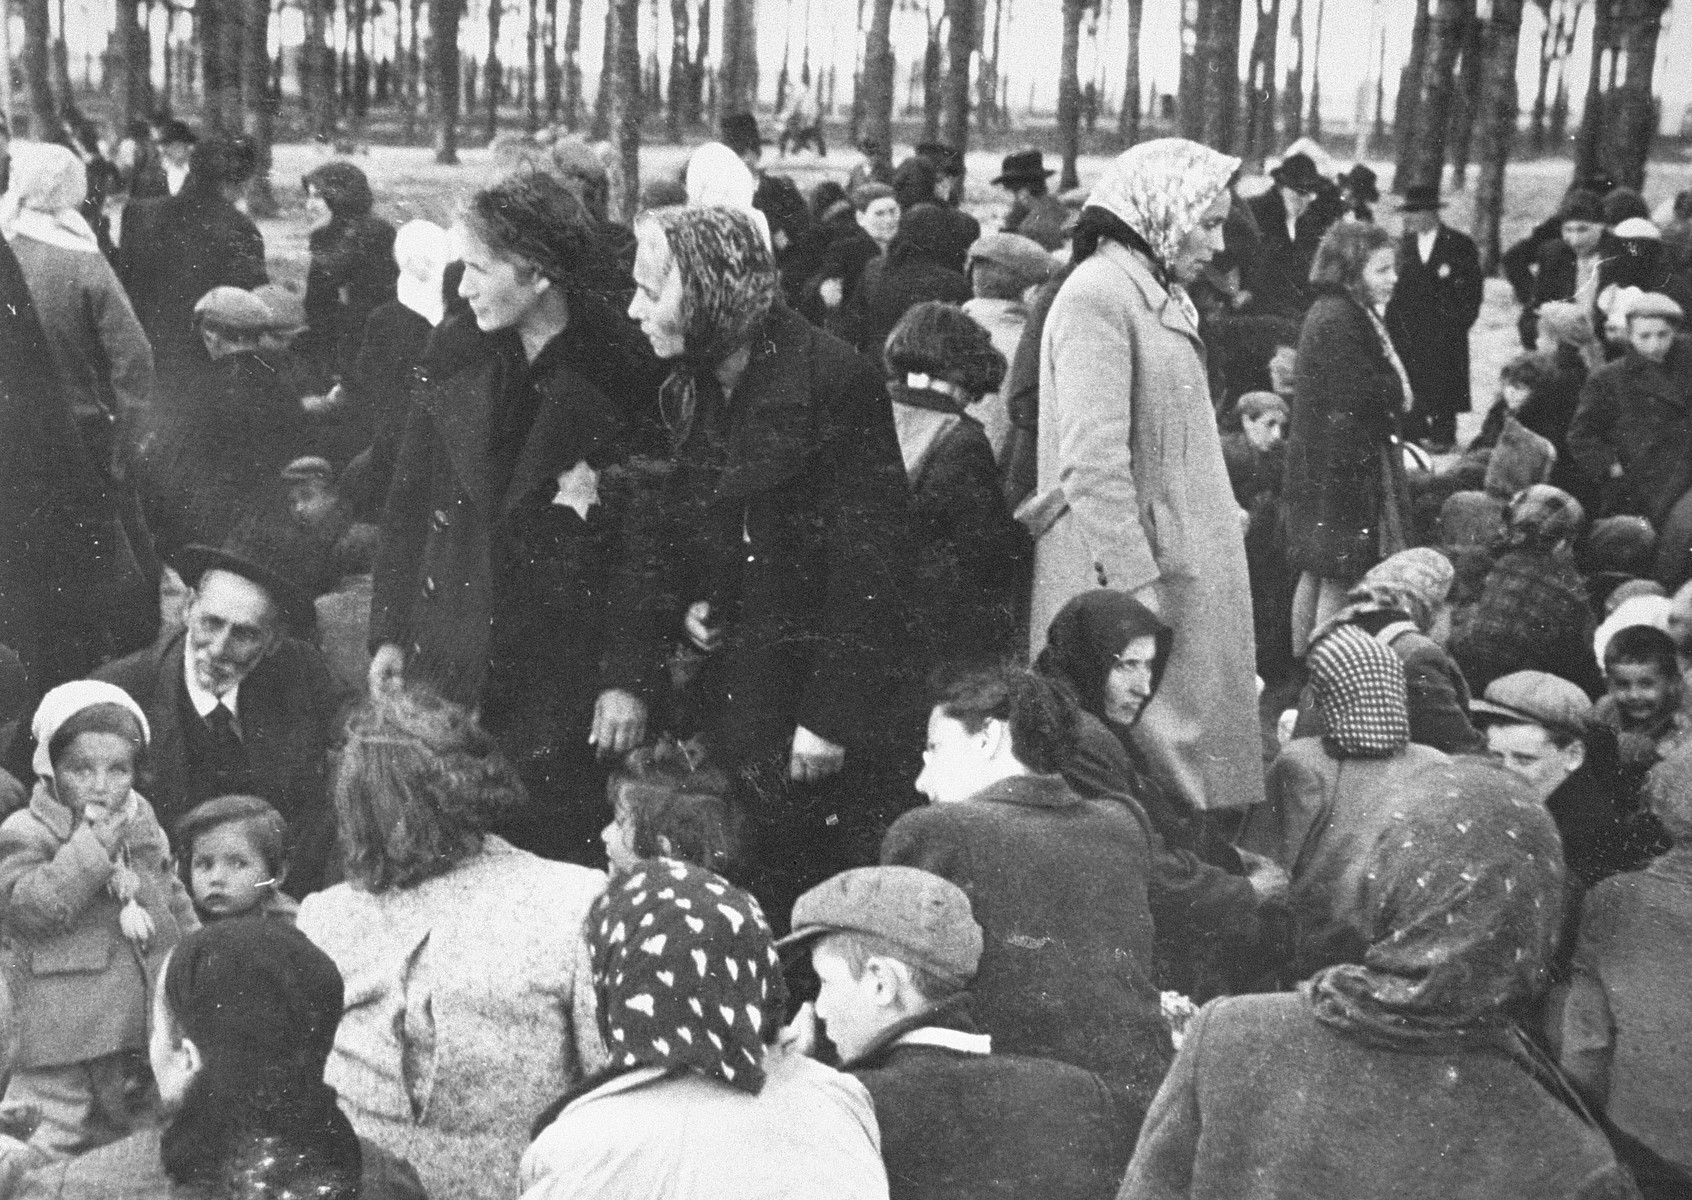 Jews from Subcarpathian Rus who have been selected for death at Auschwitz-Birkenau, wait in a clearing near a grove of trees before being led to the gas chambers.